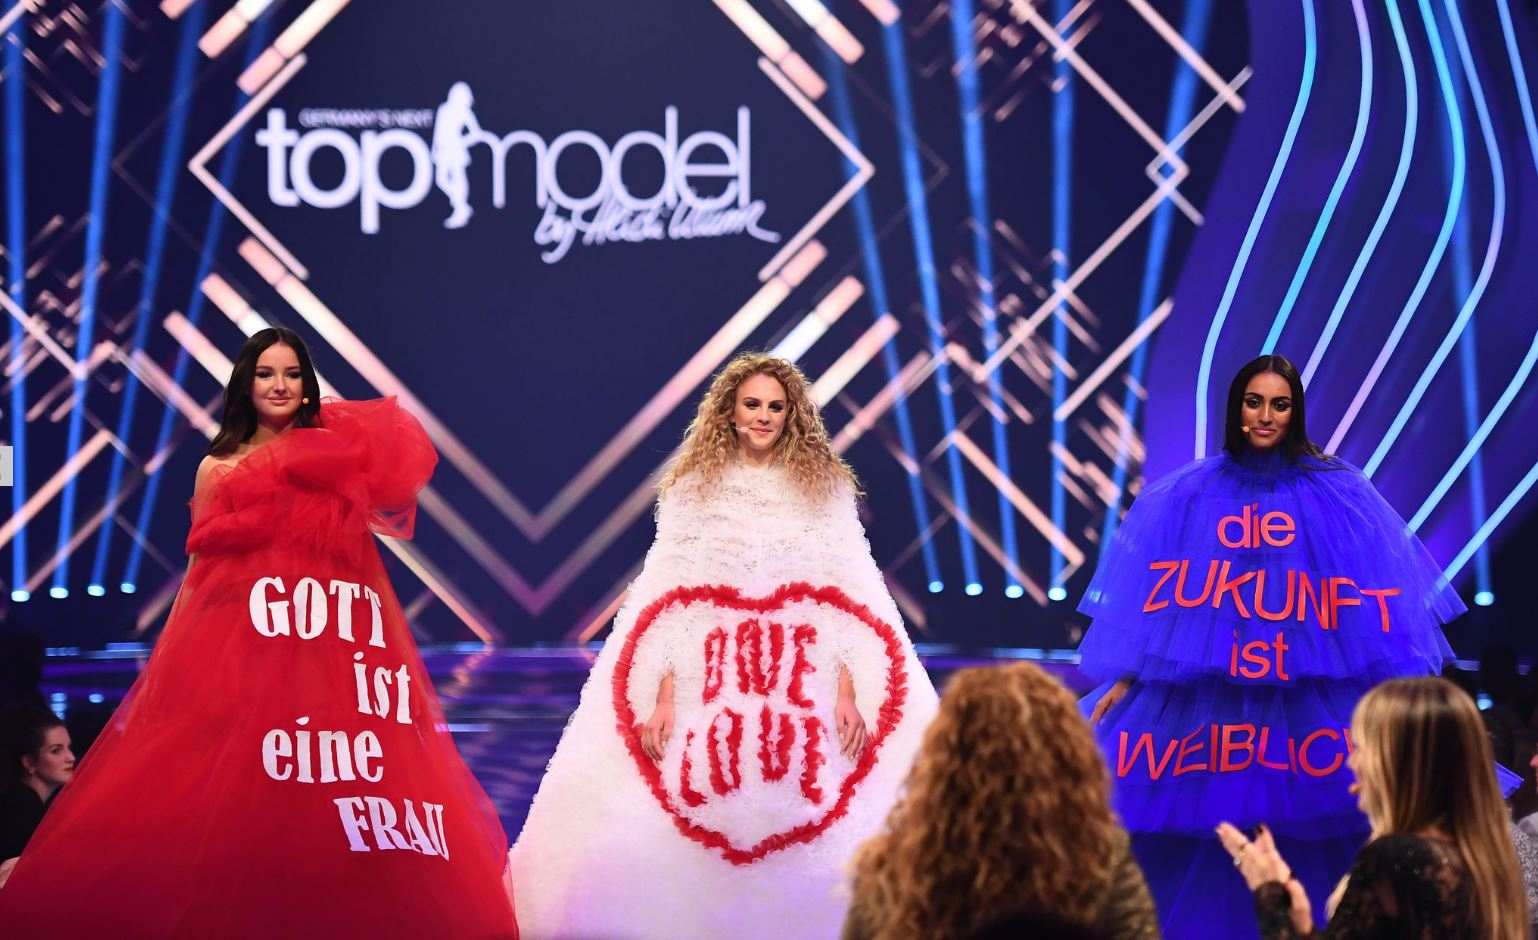 Germany's Next Top Model: Building fan loyalty